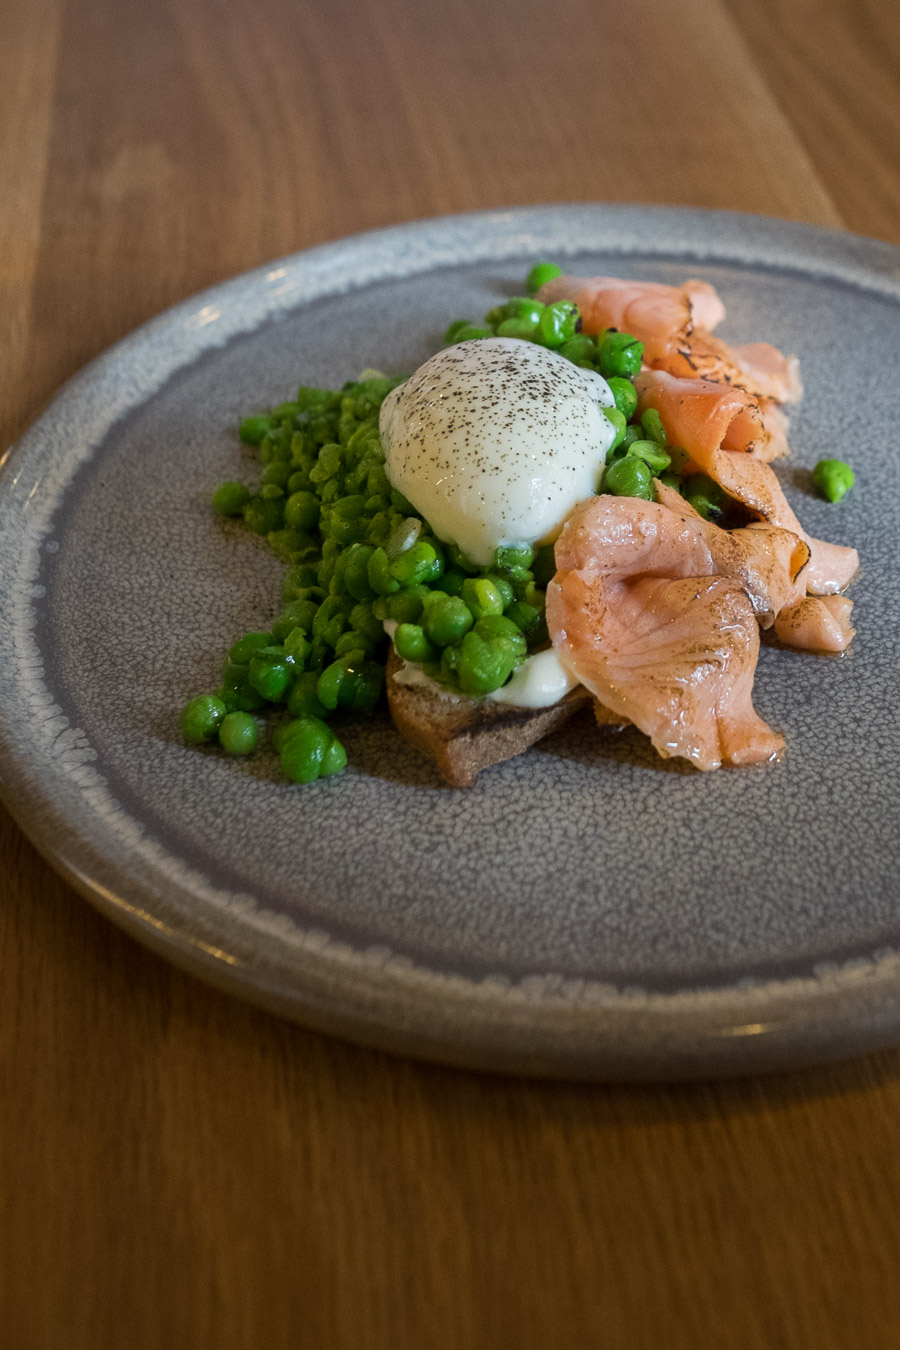 Torched ocean trout, slow egg, peas, rye